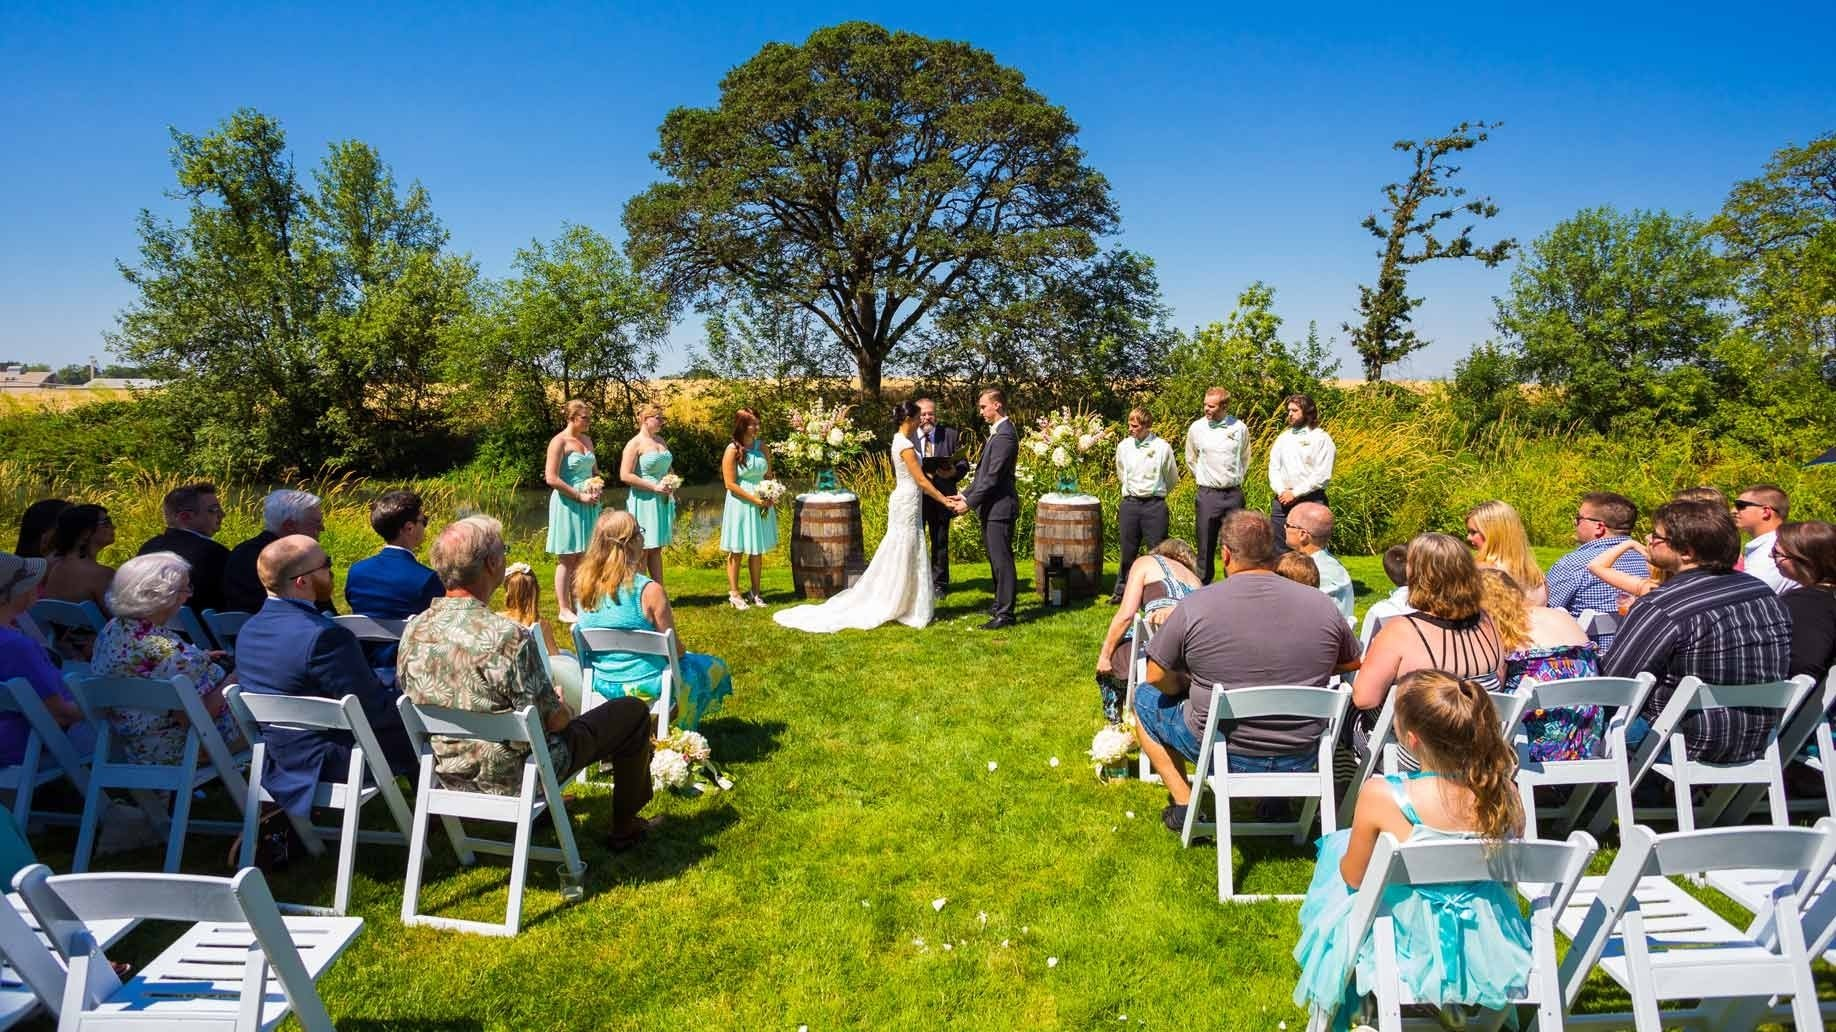 10 Cute Small Wedding Ideas On A Budget 16 cheap budget wedding venue ideas for the ceremony reception 3